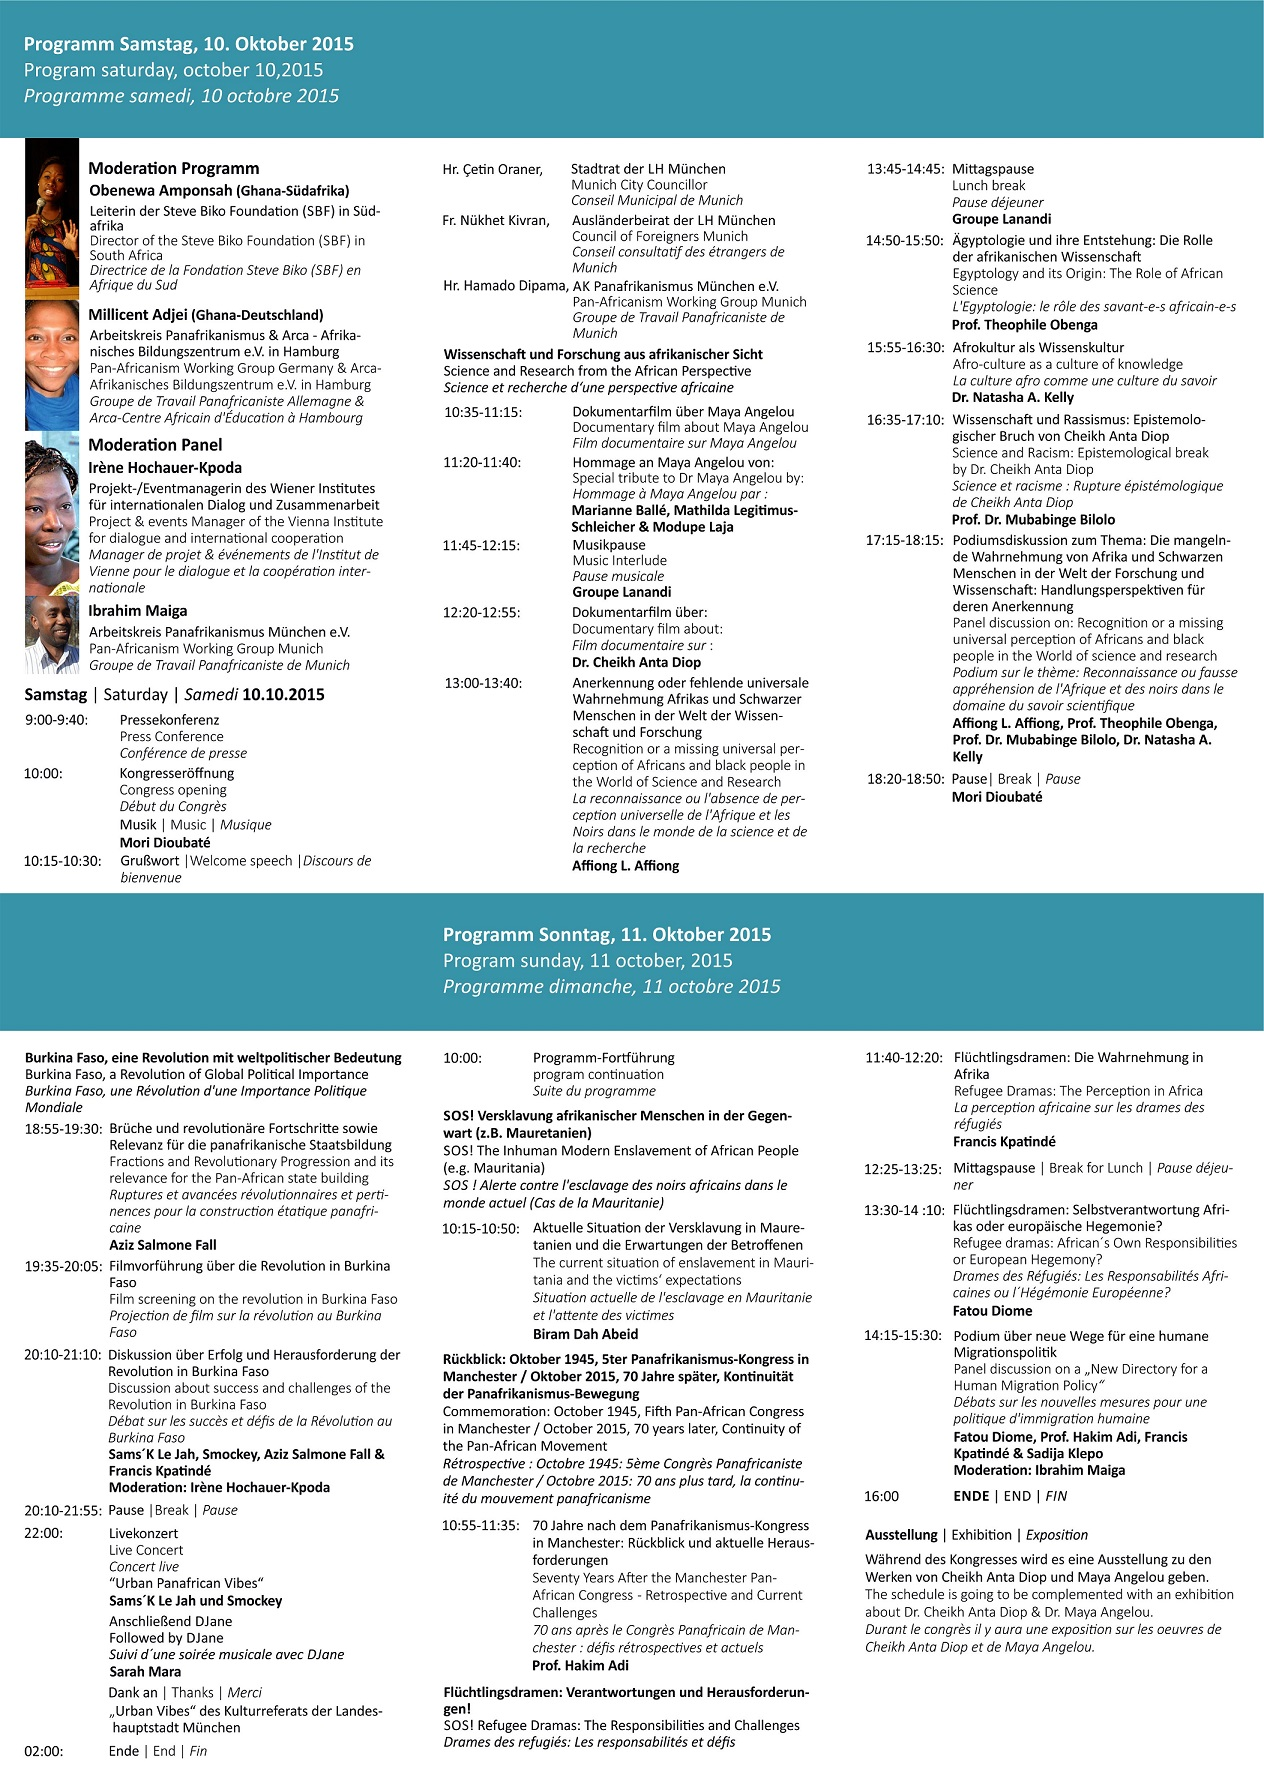 files/Kongress 2015/Flyer A3 final S2.jpg